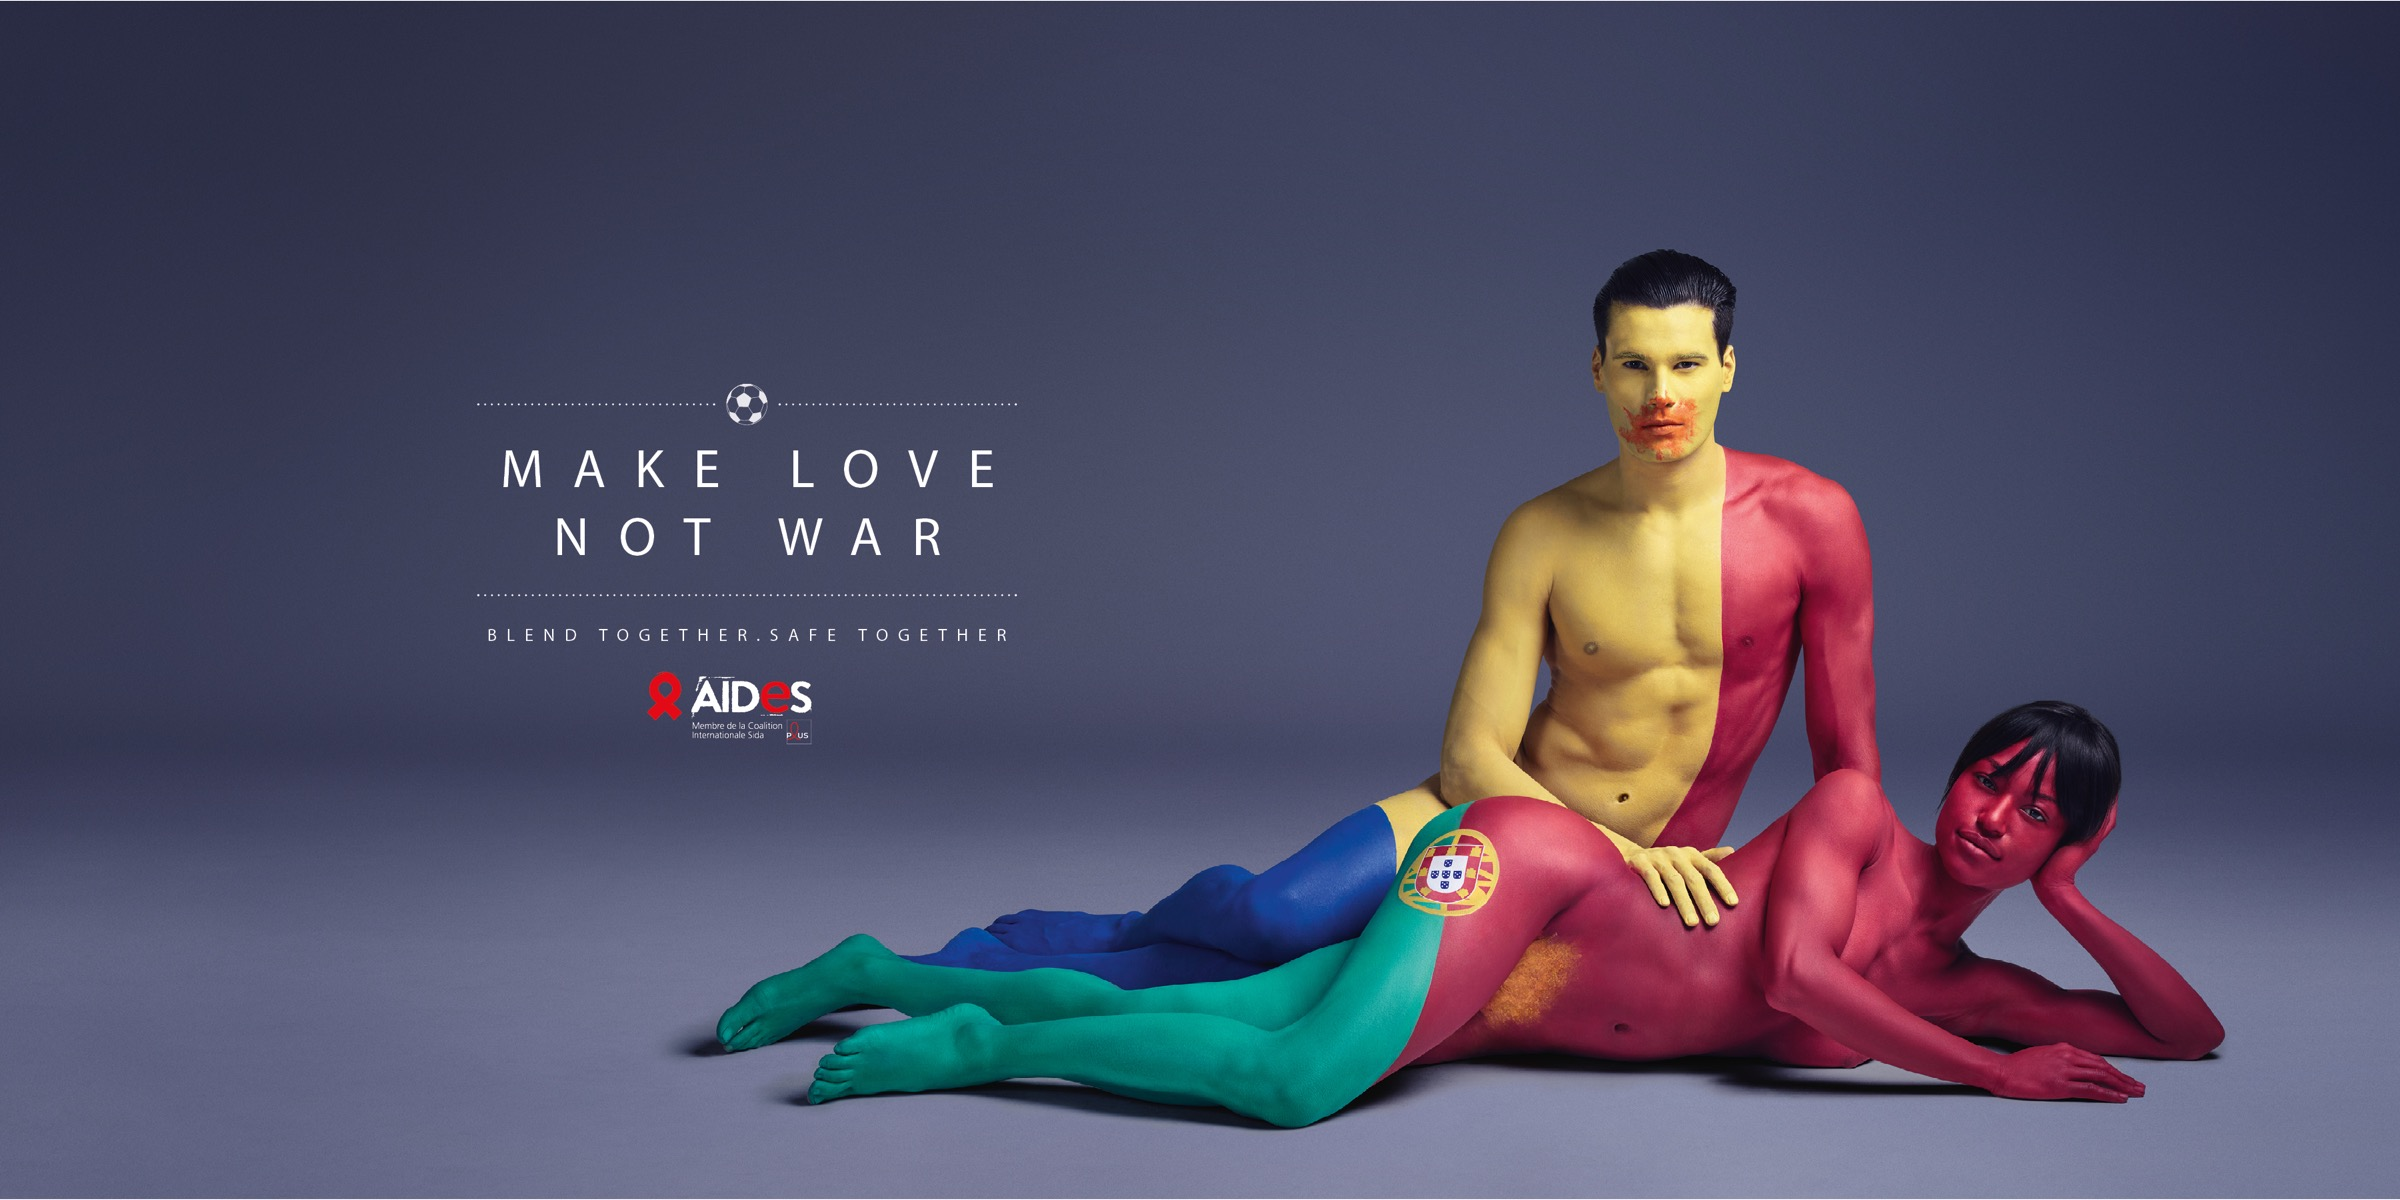 Urethral sounding